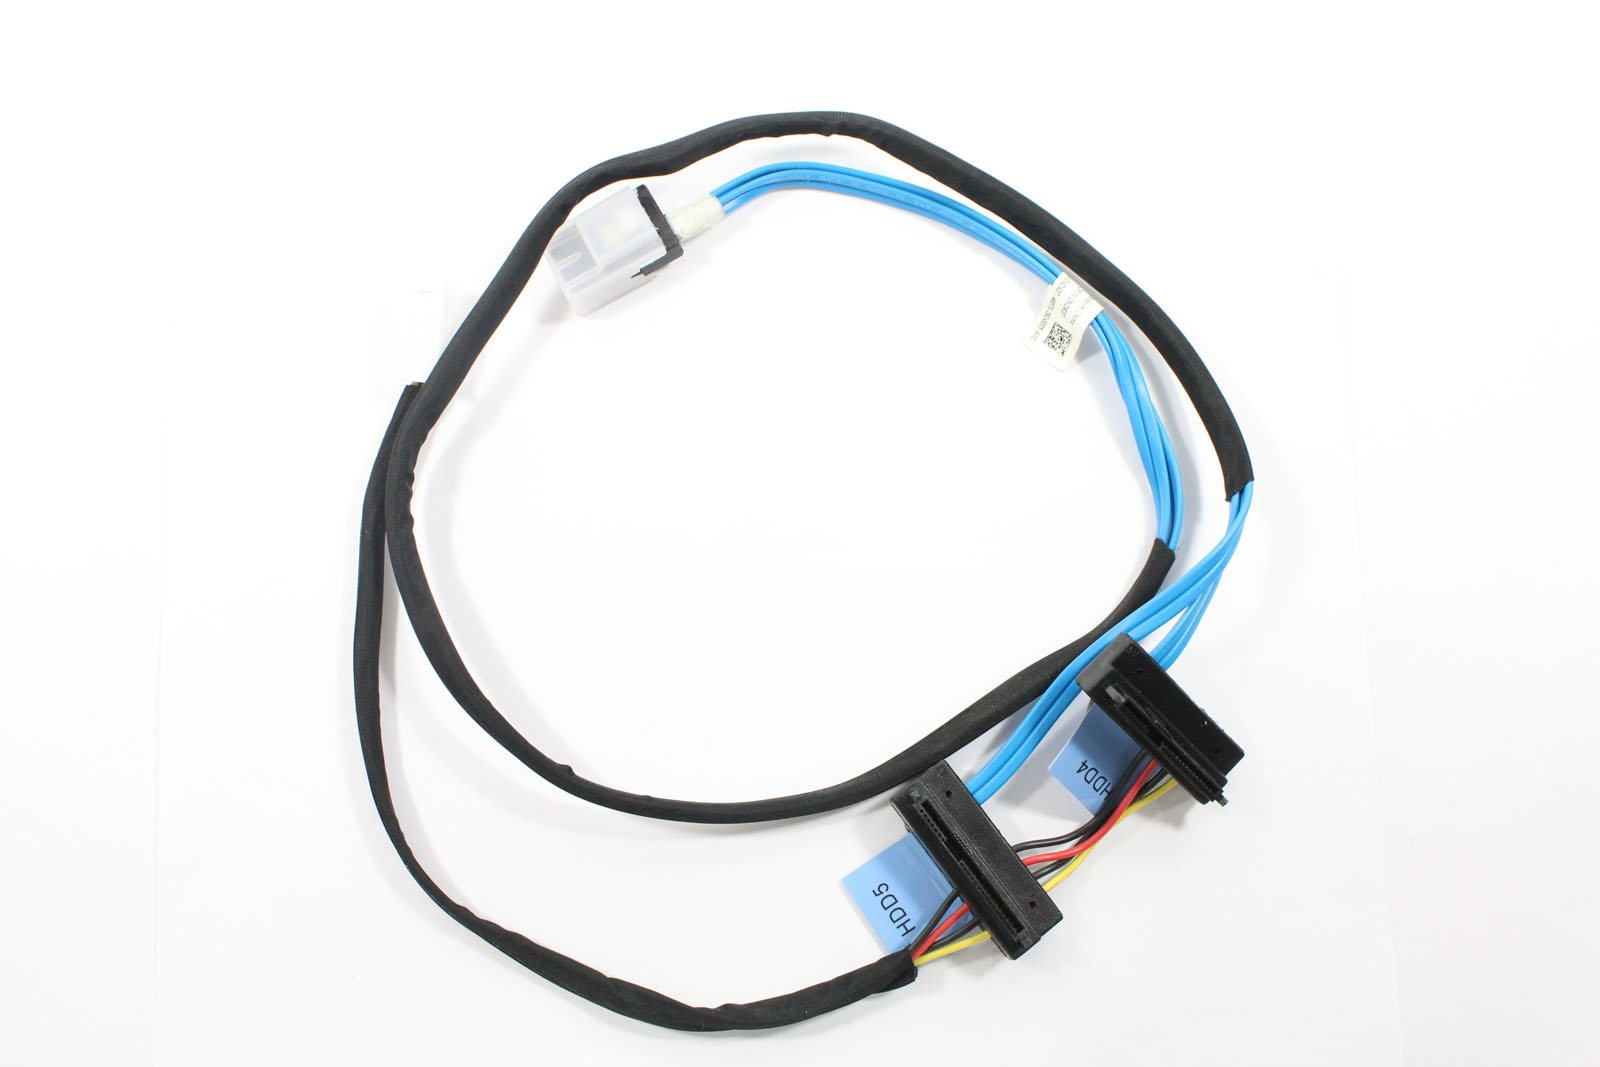 Dell Perc7 Mini SAS to Dual SAS and 4 Pin Power Connection Cable - ND63T